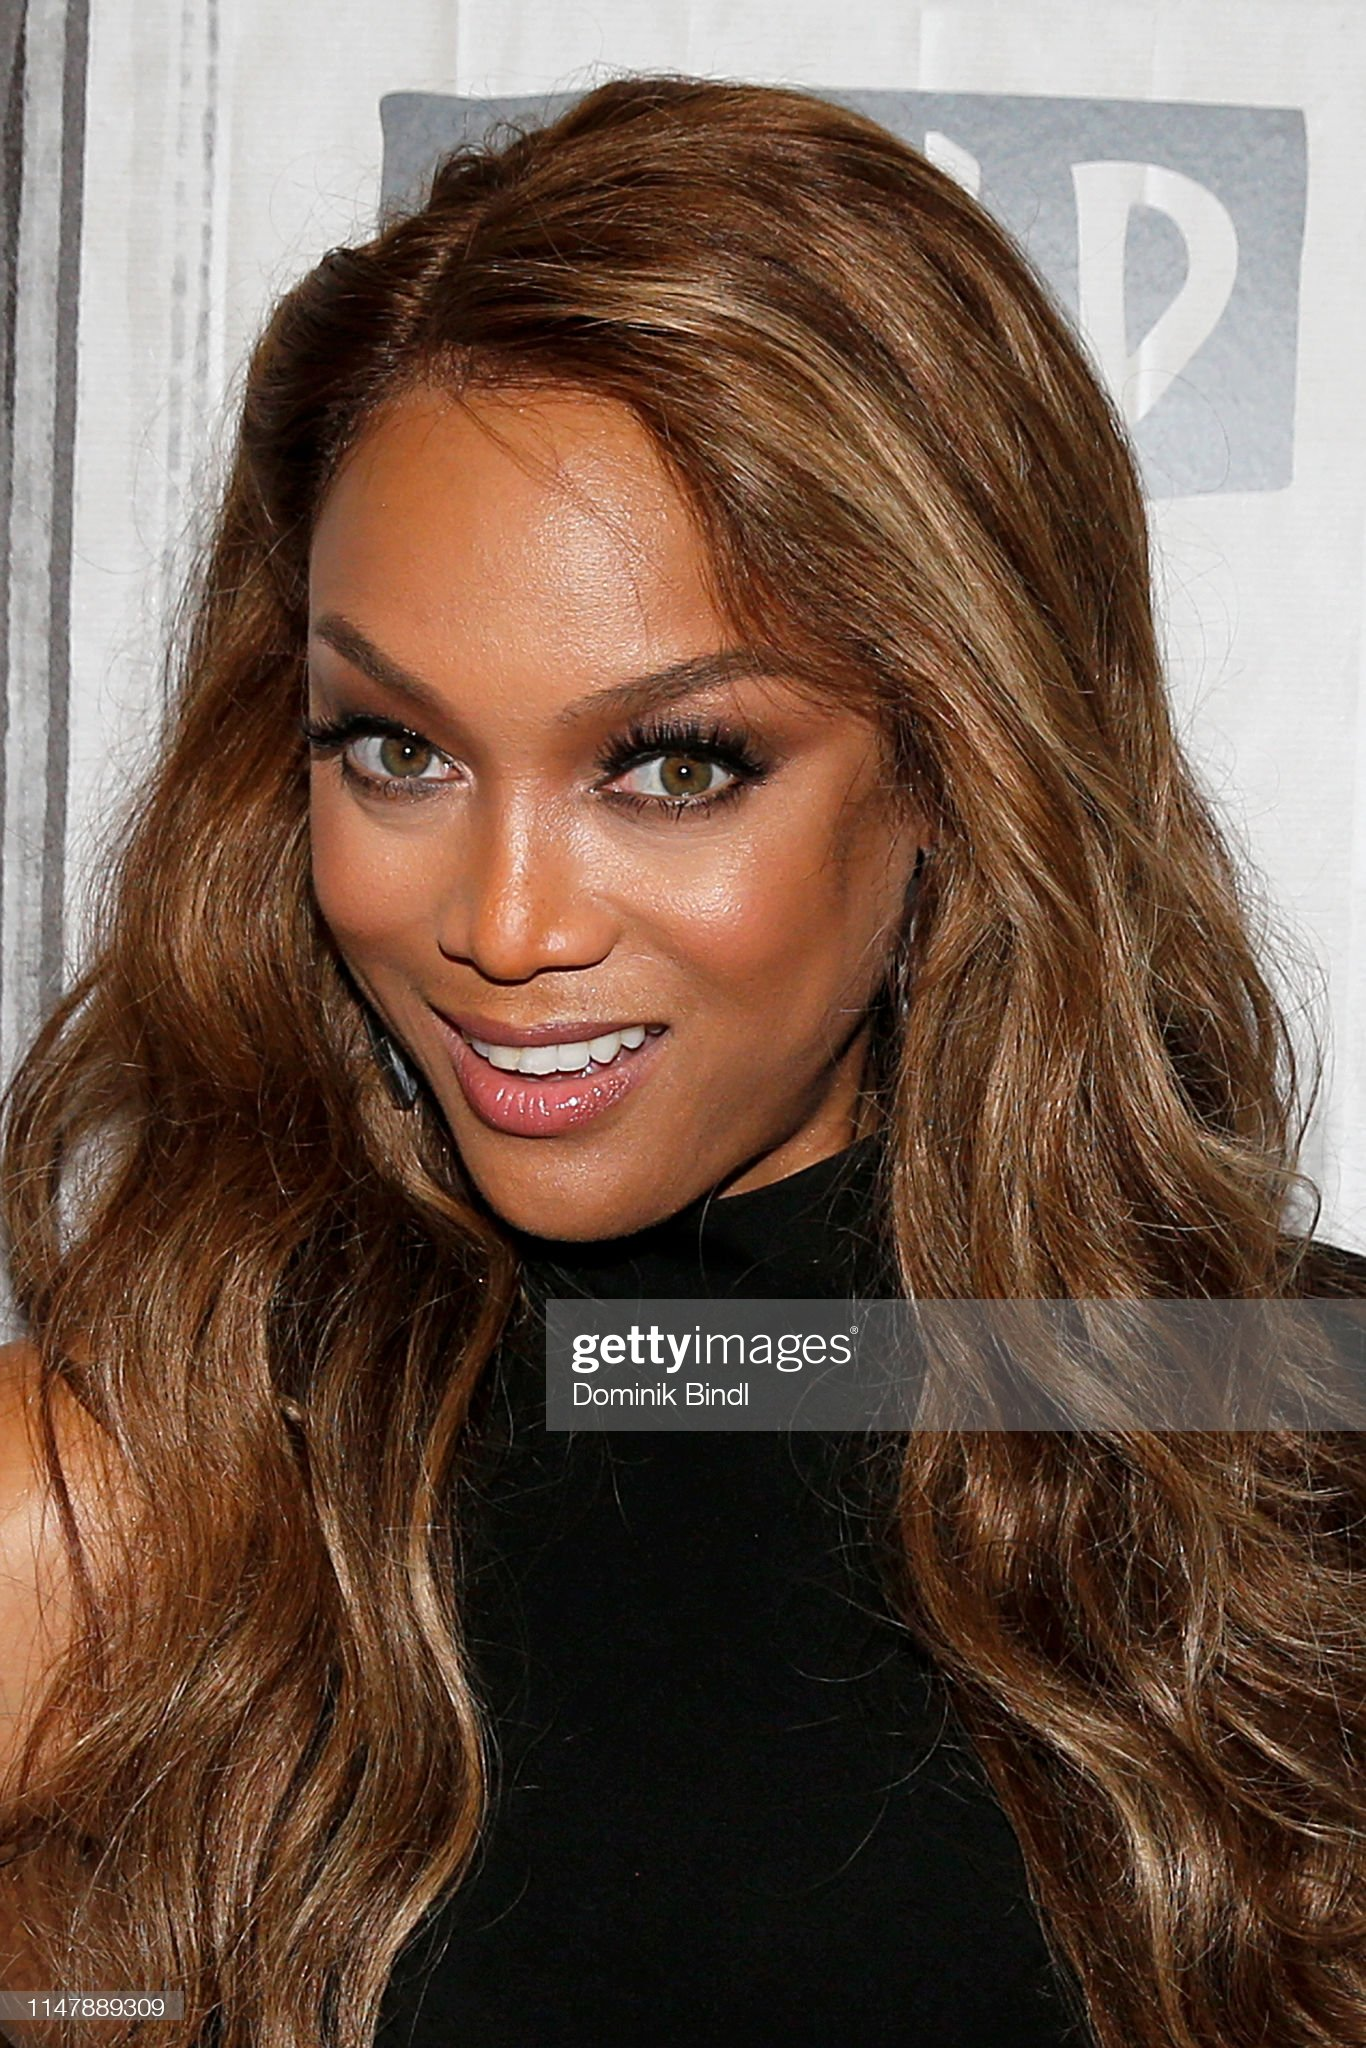 Hazel eyes - Personas famosas con los ojos de color AVELLANA Tyra-banks-attends-the-build-series-to-discuss-2019-sports-swimsuit-picture-id1147889309?s=2048x2048